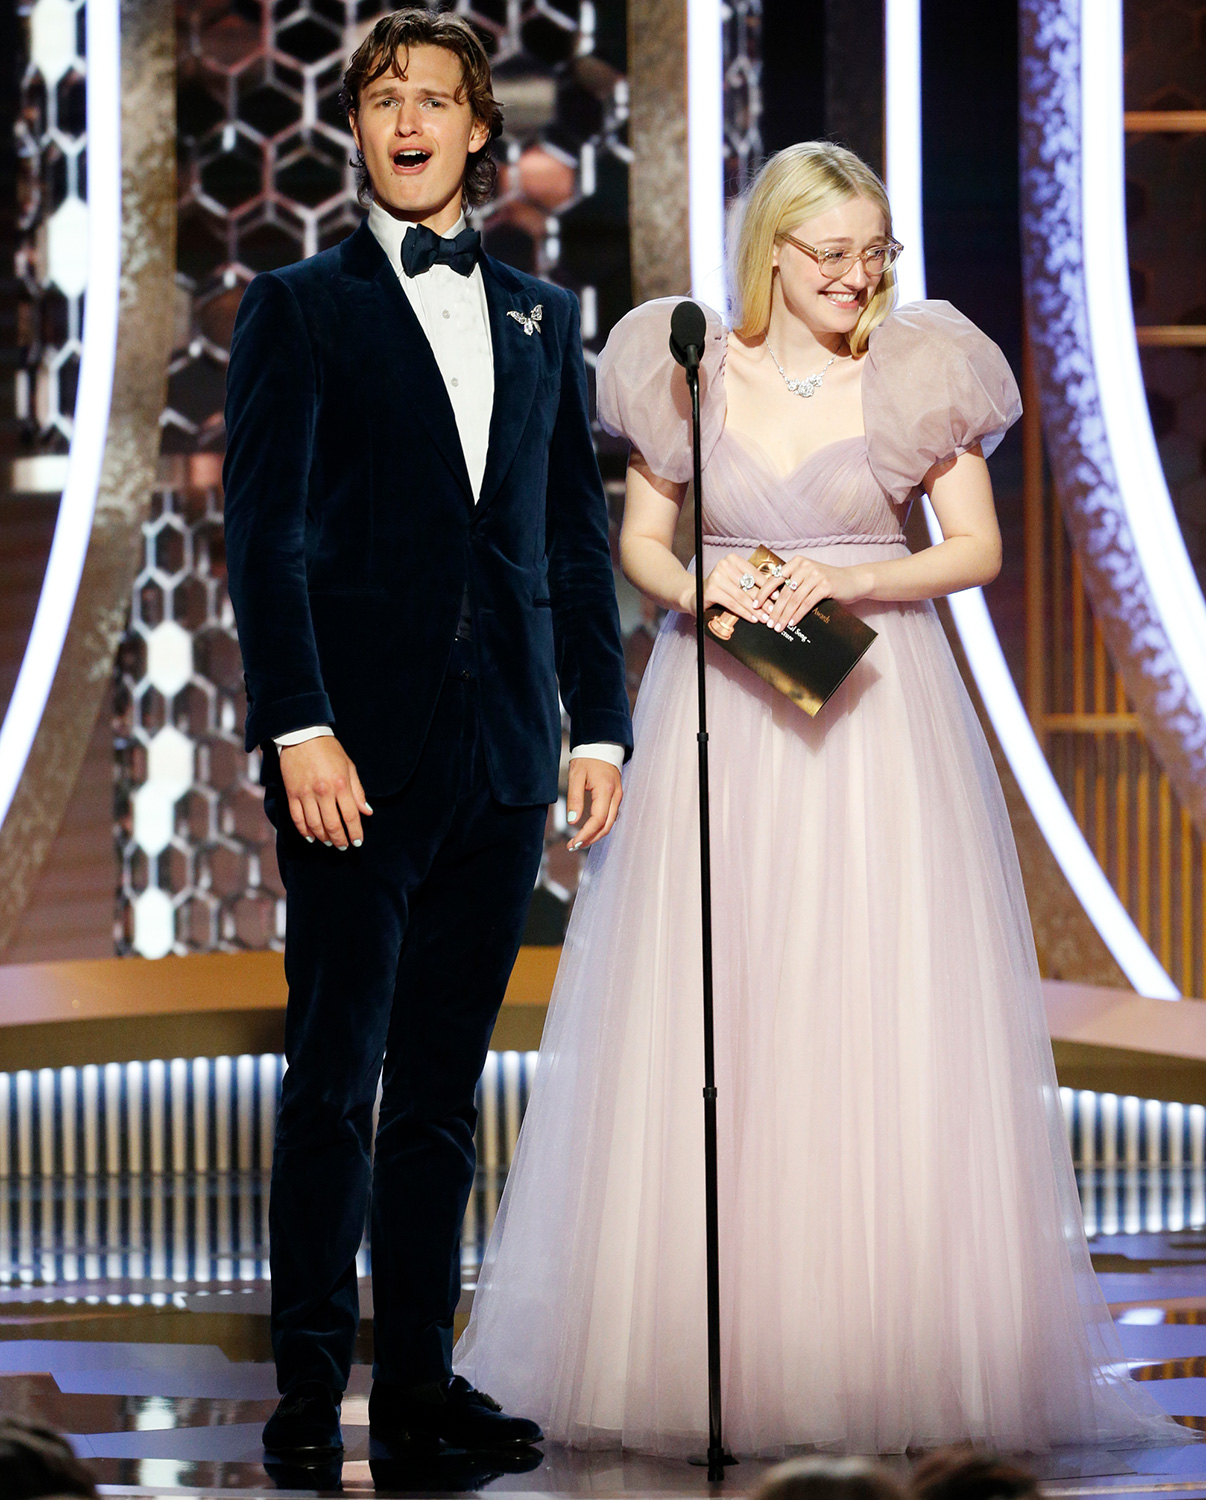 Ansel Elgort and Dakota Fanning